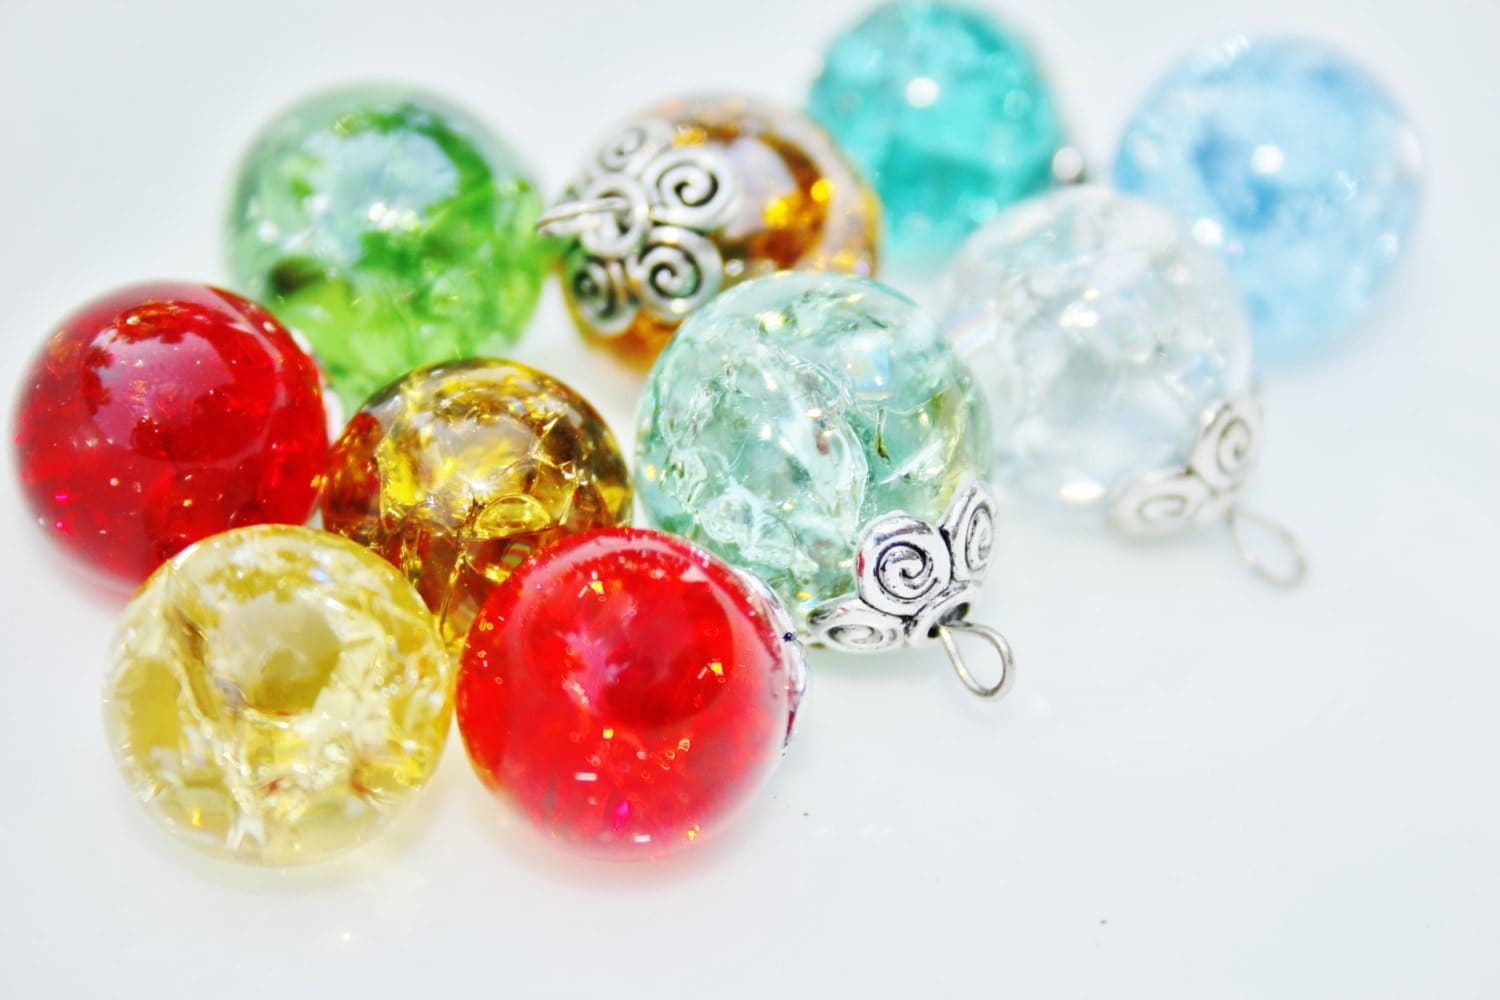 Bulk Colored Marbles : Cracked shattered fried marbles transparent see